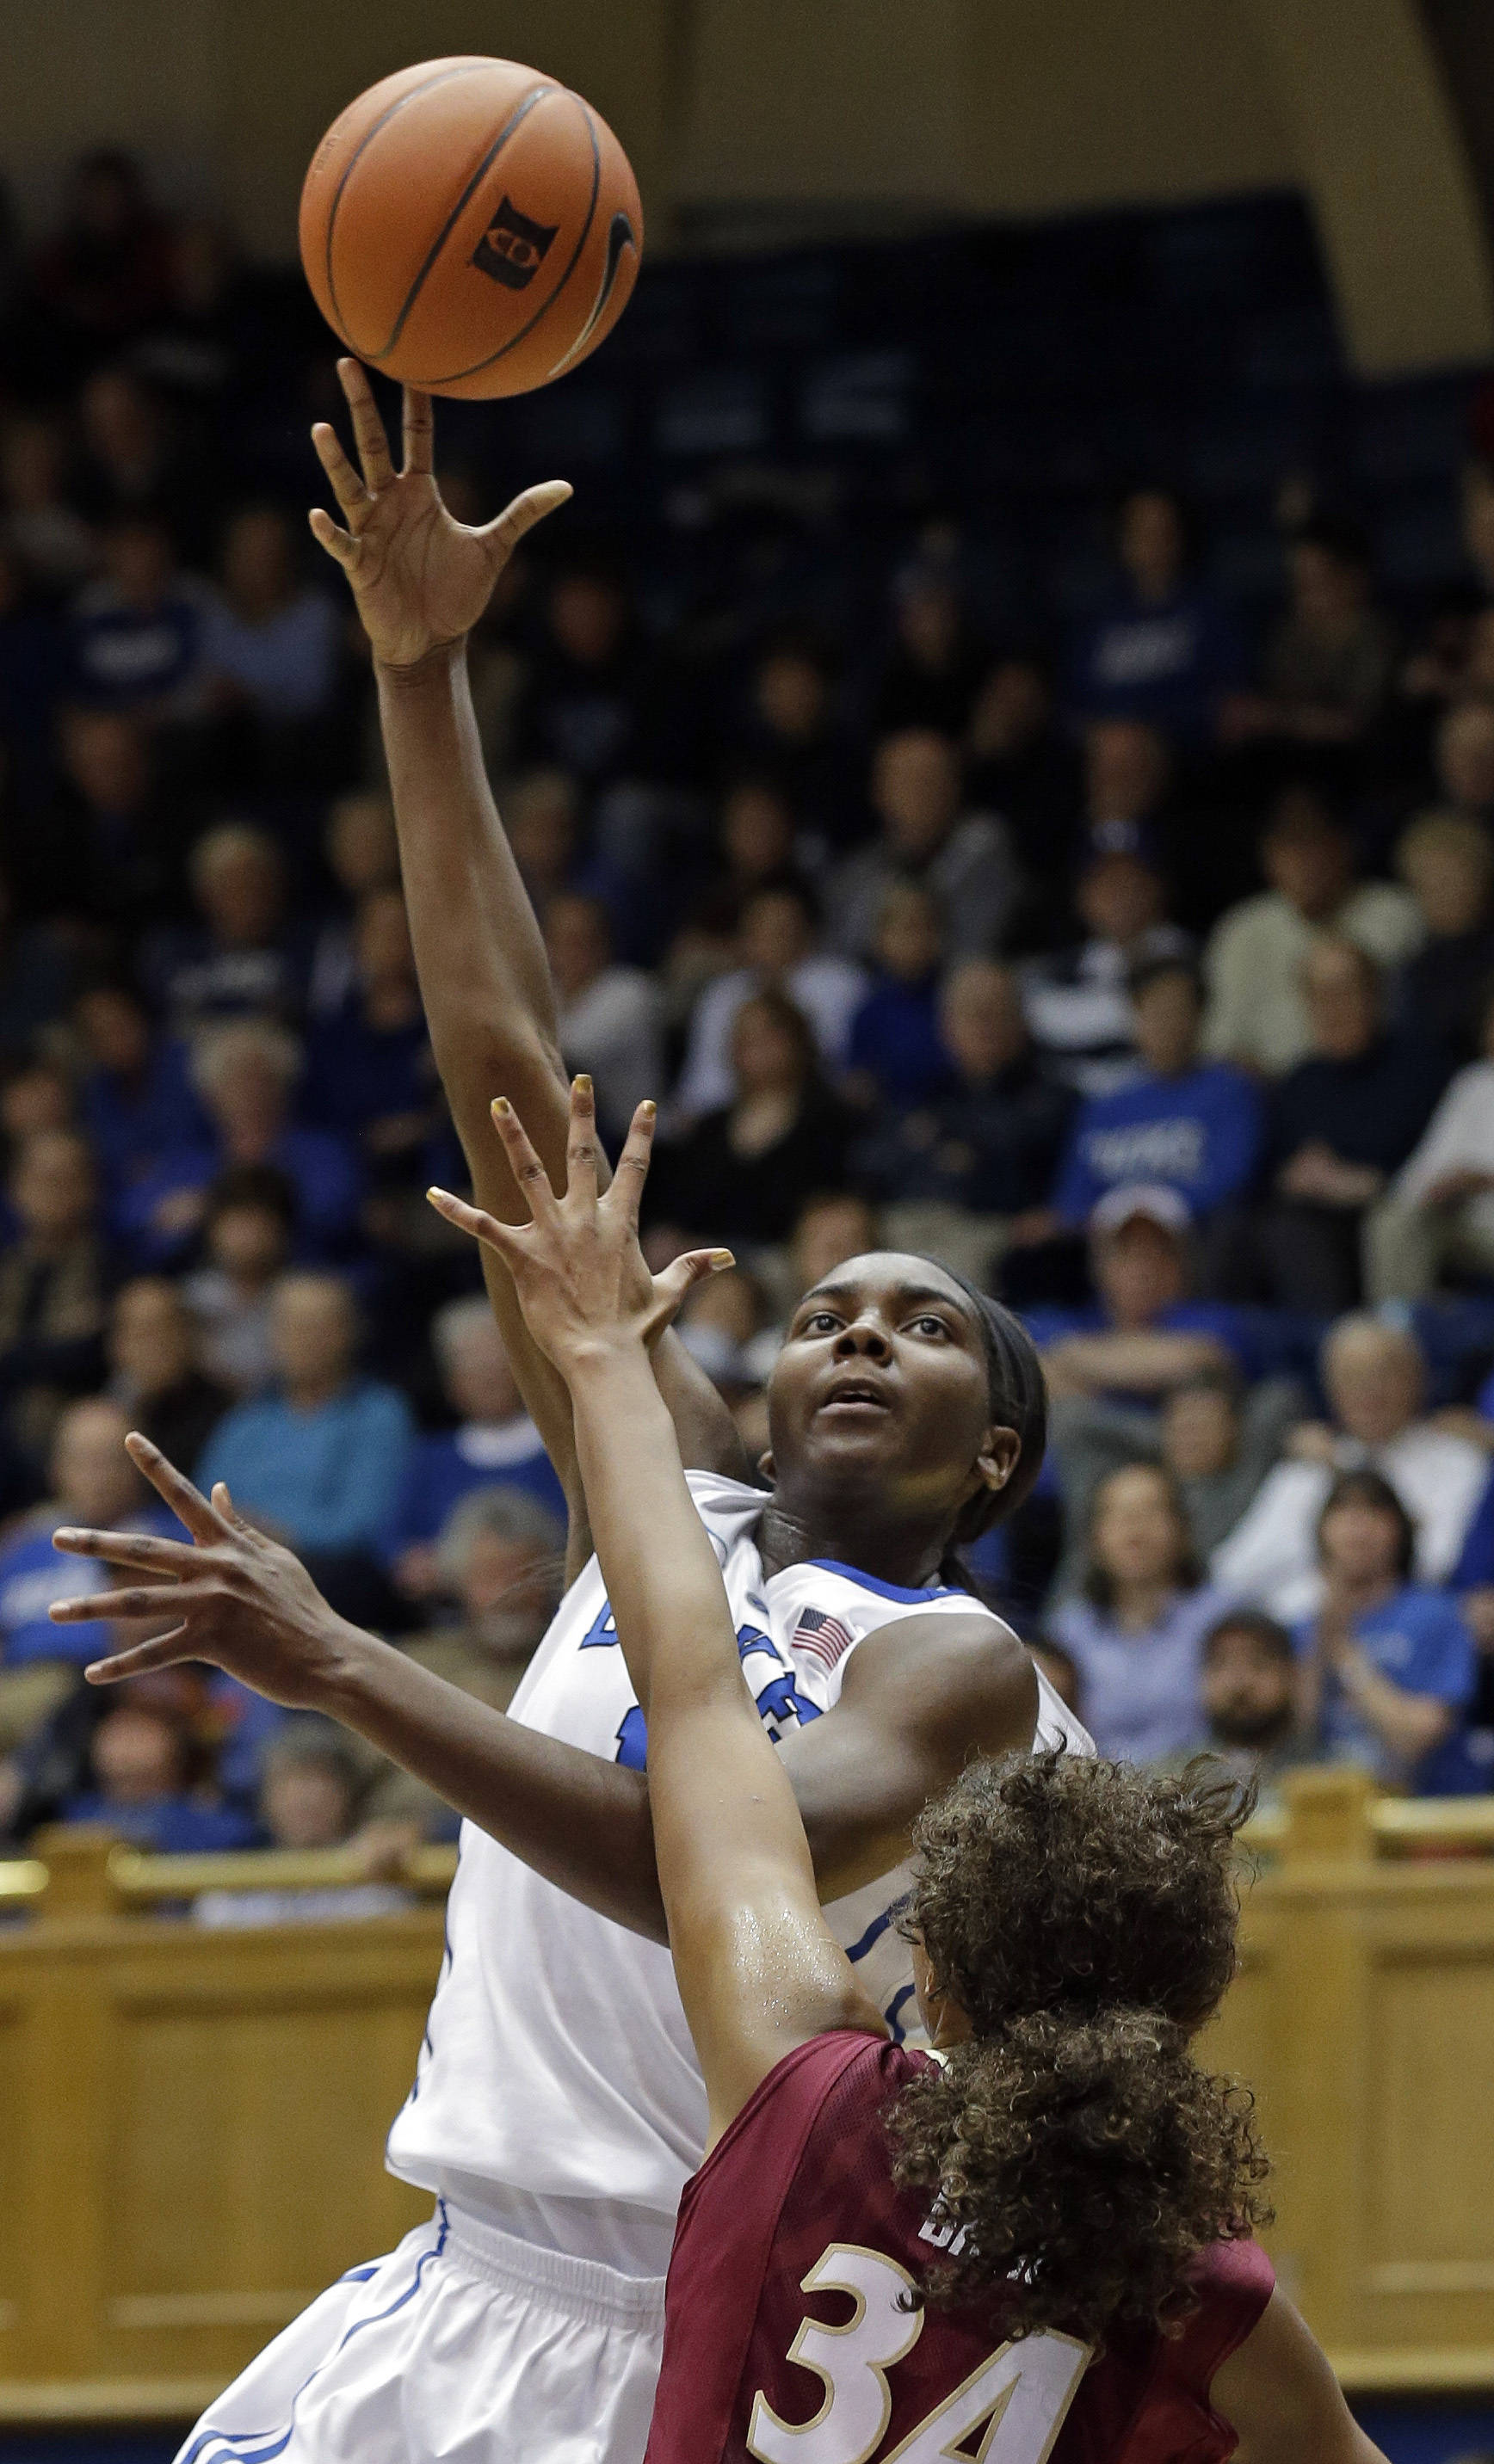 Duke's Elizabeth Williams shoots as Florida State's Chelsea Davis (34) defends. (AP Photo/Gerry Broome)